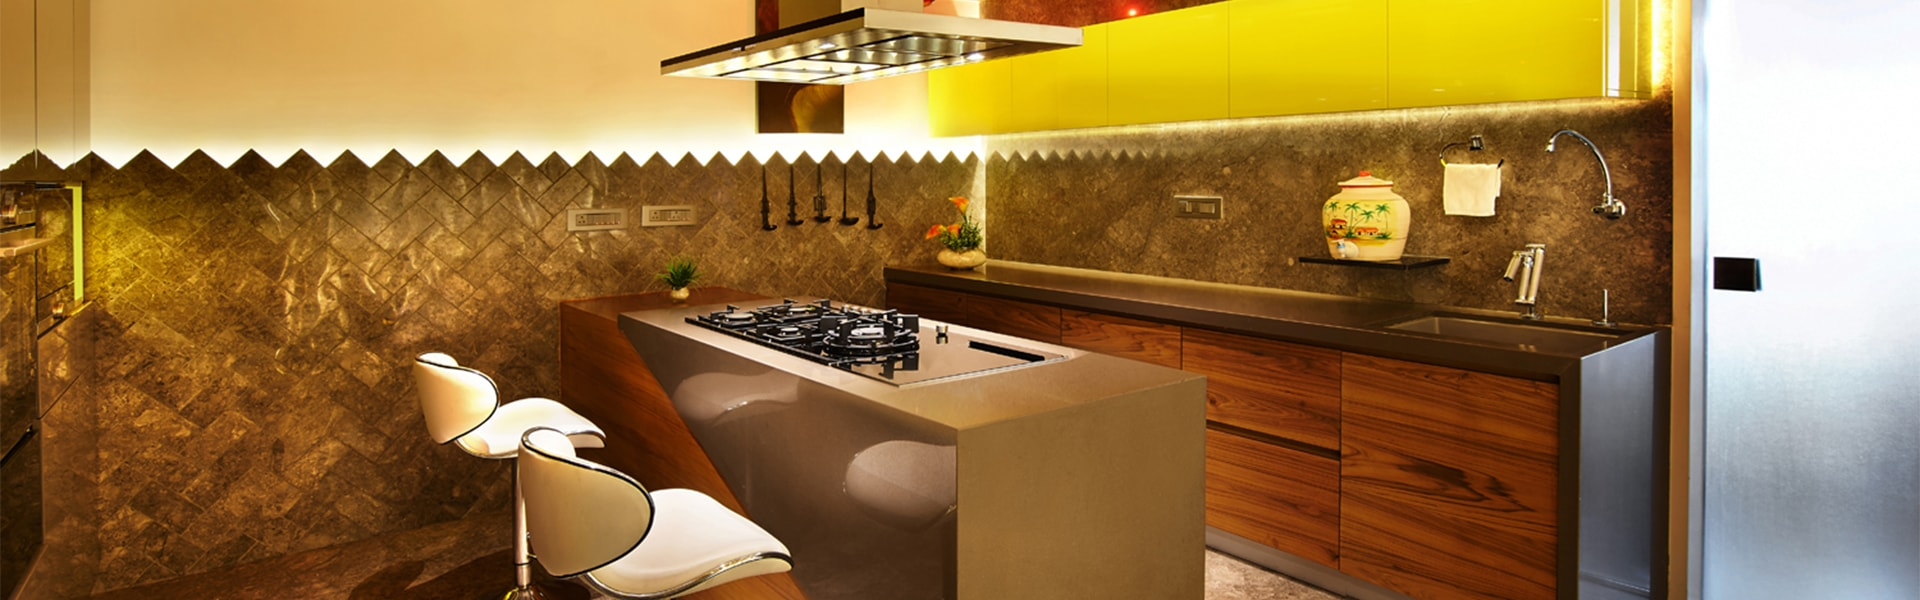 best kitchen design service